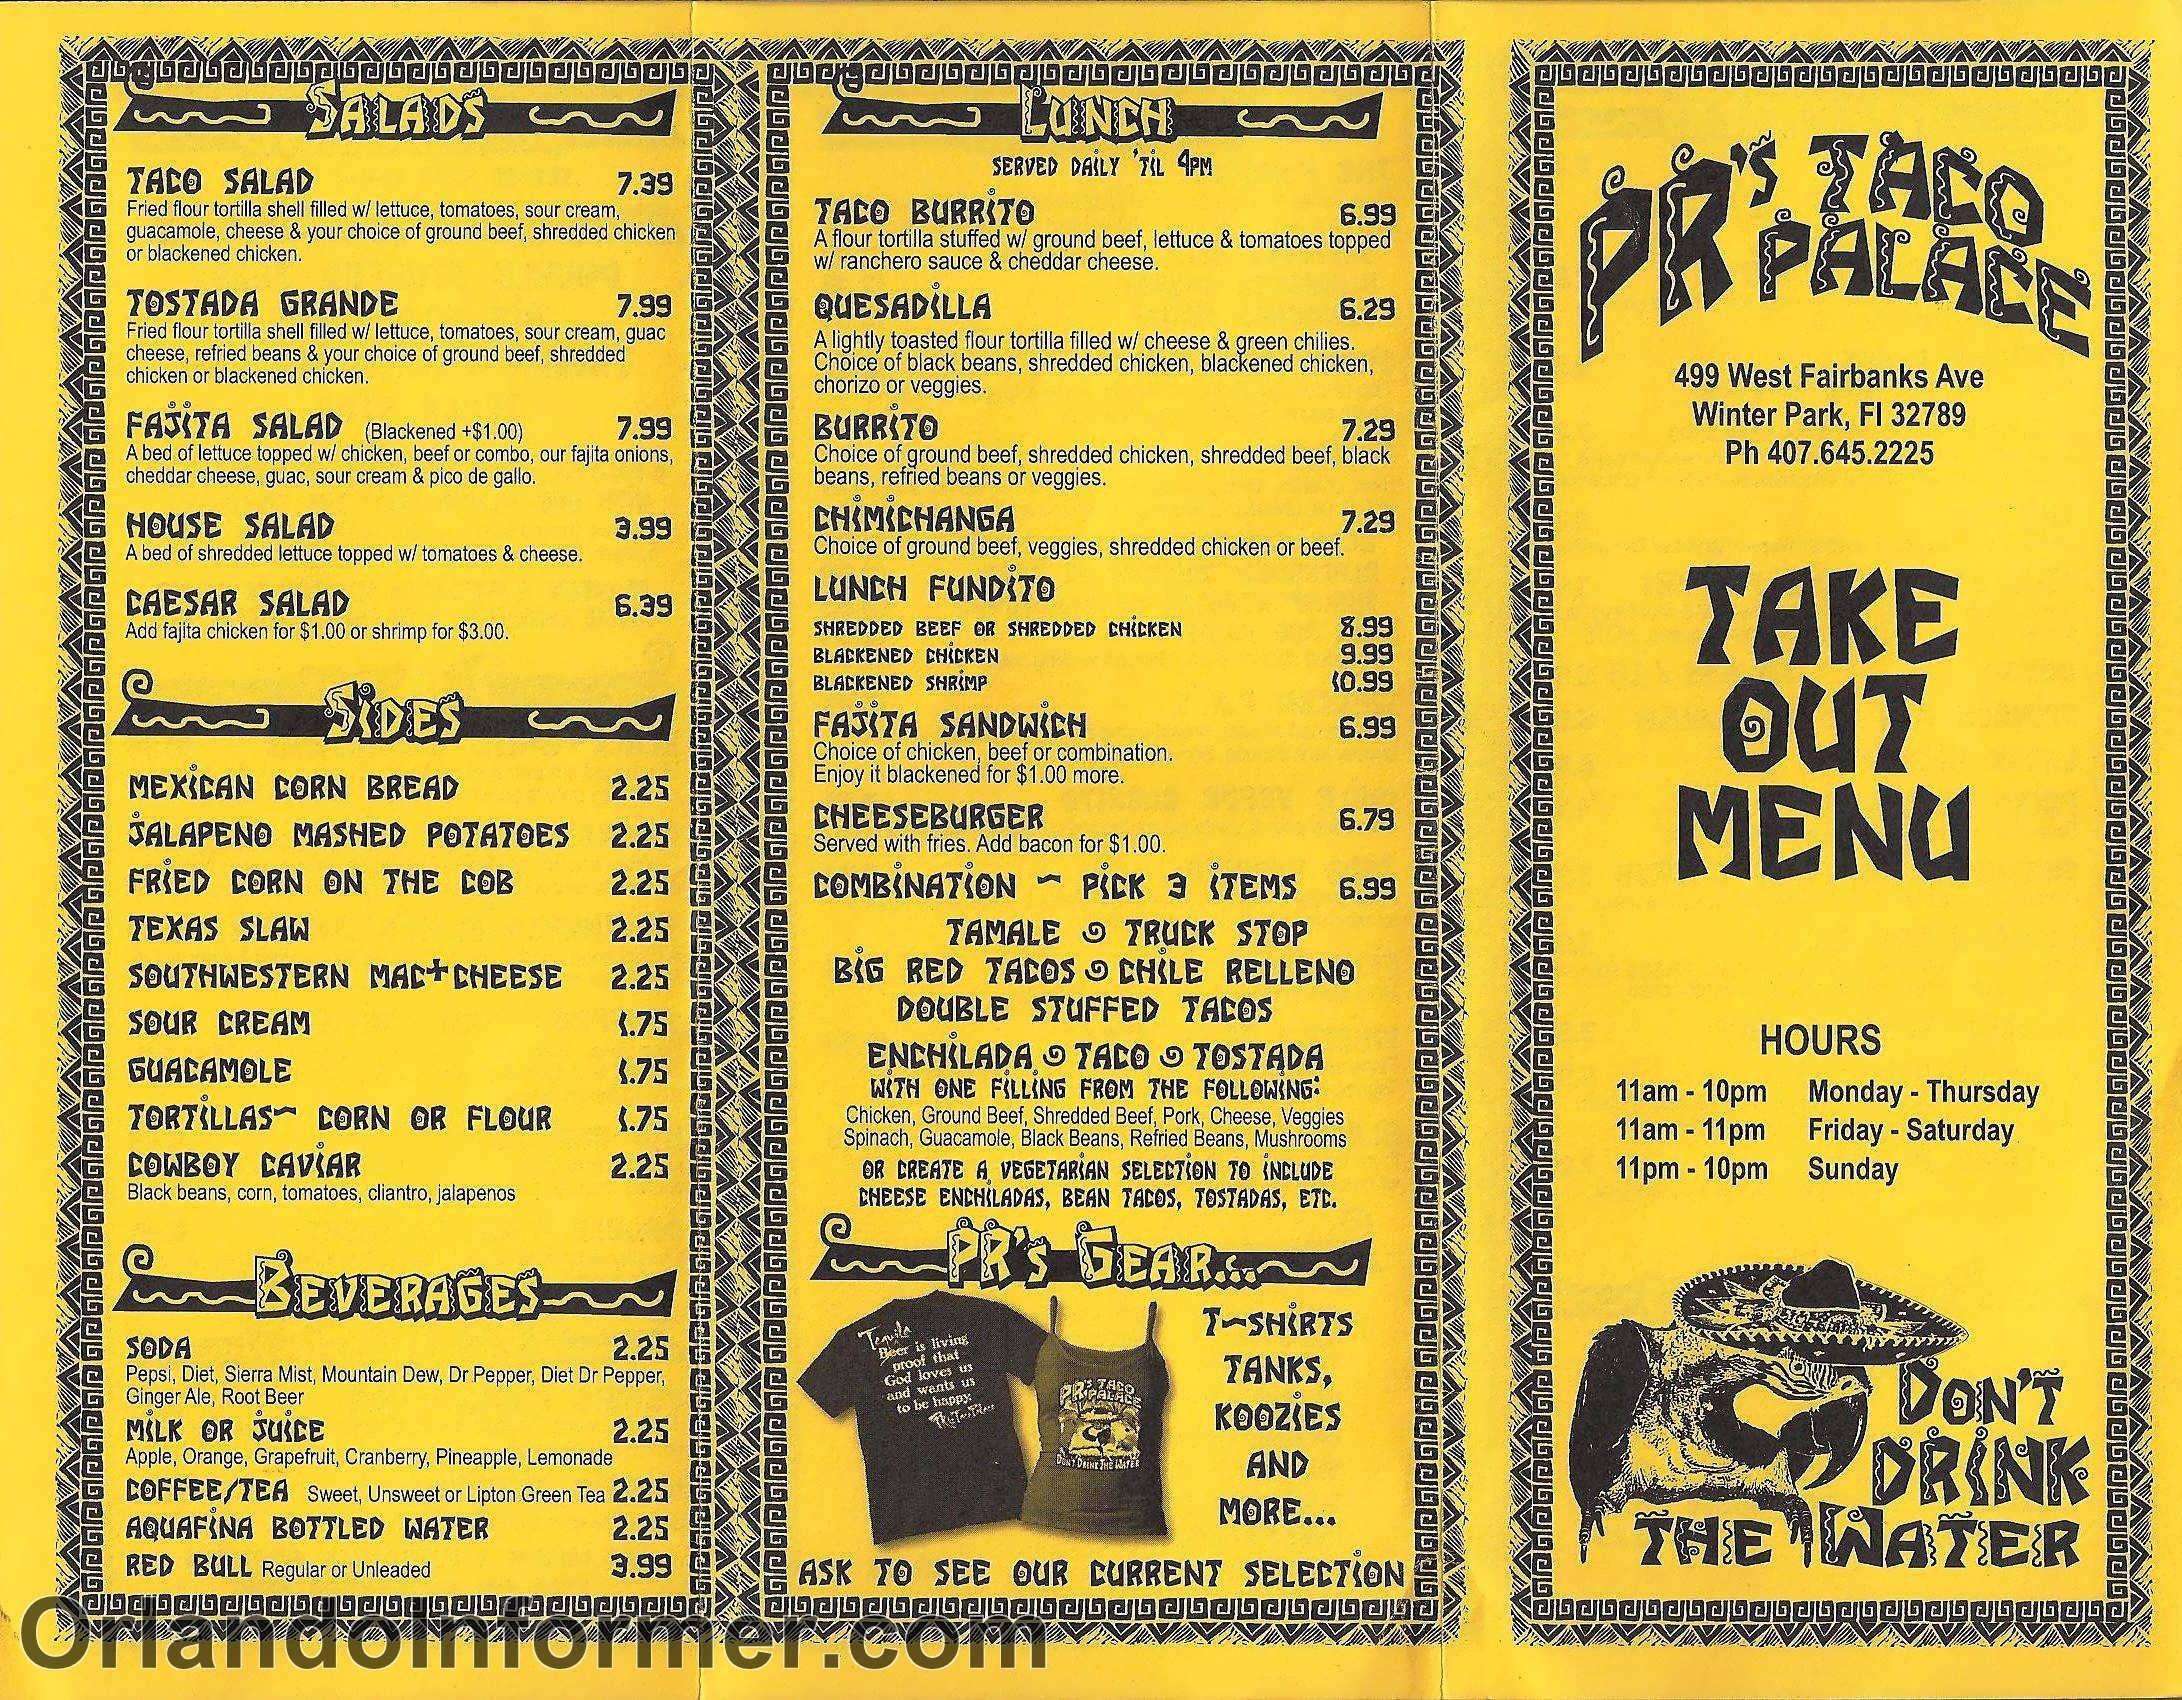 Pr 39 s taco palace winter park 39 s mexican restaurant for Take out menu